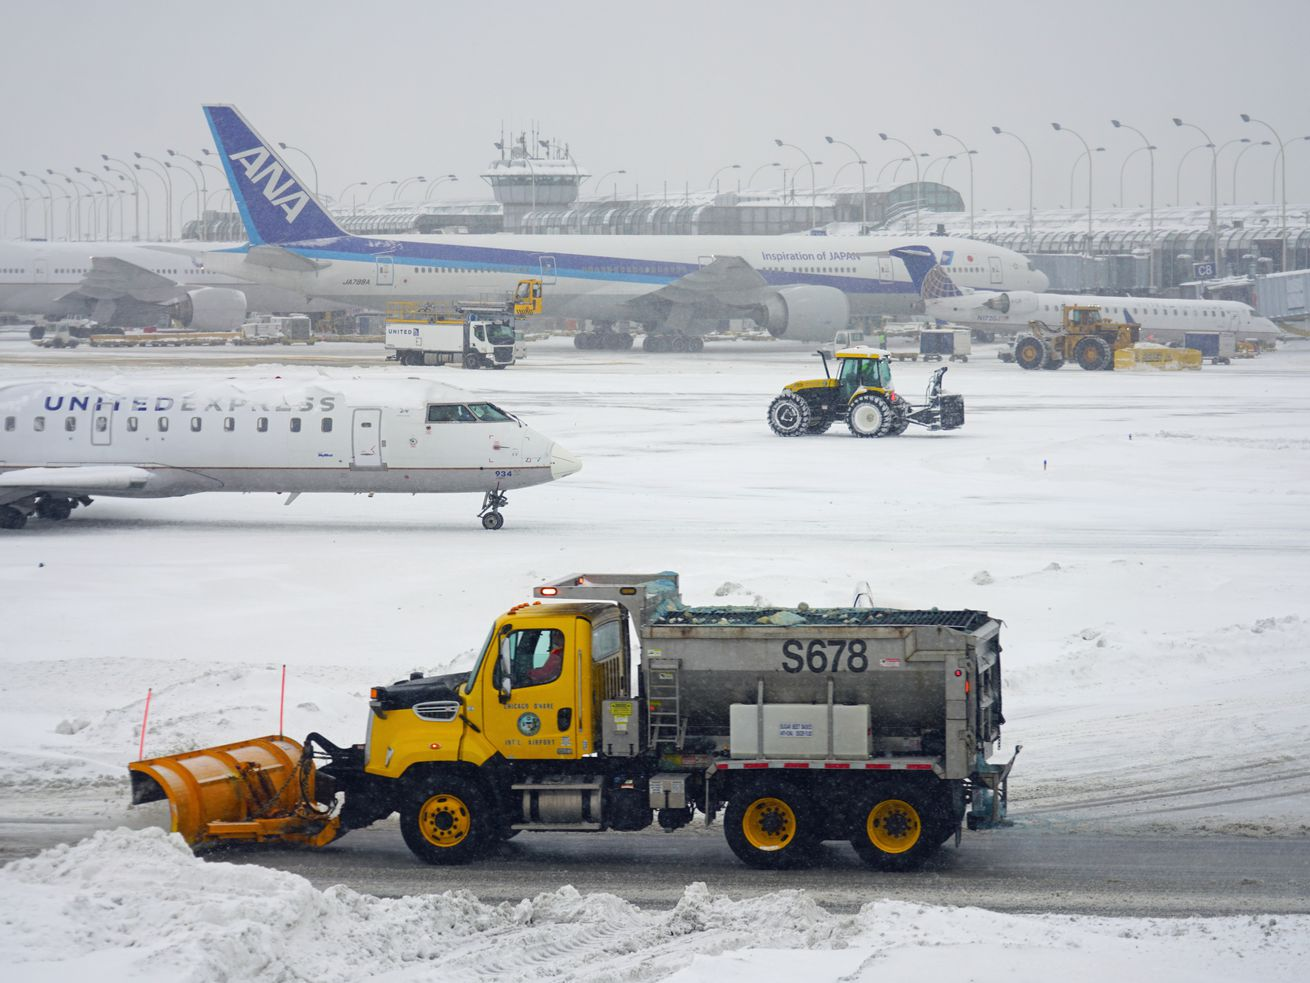 Planes during a winter snow storm at the Chicago O'Hare International Airport.